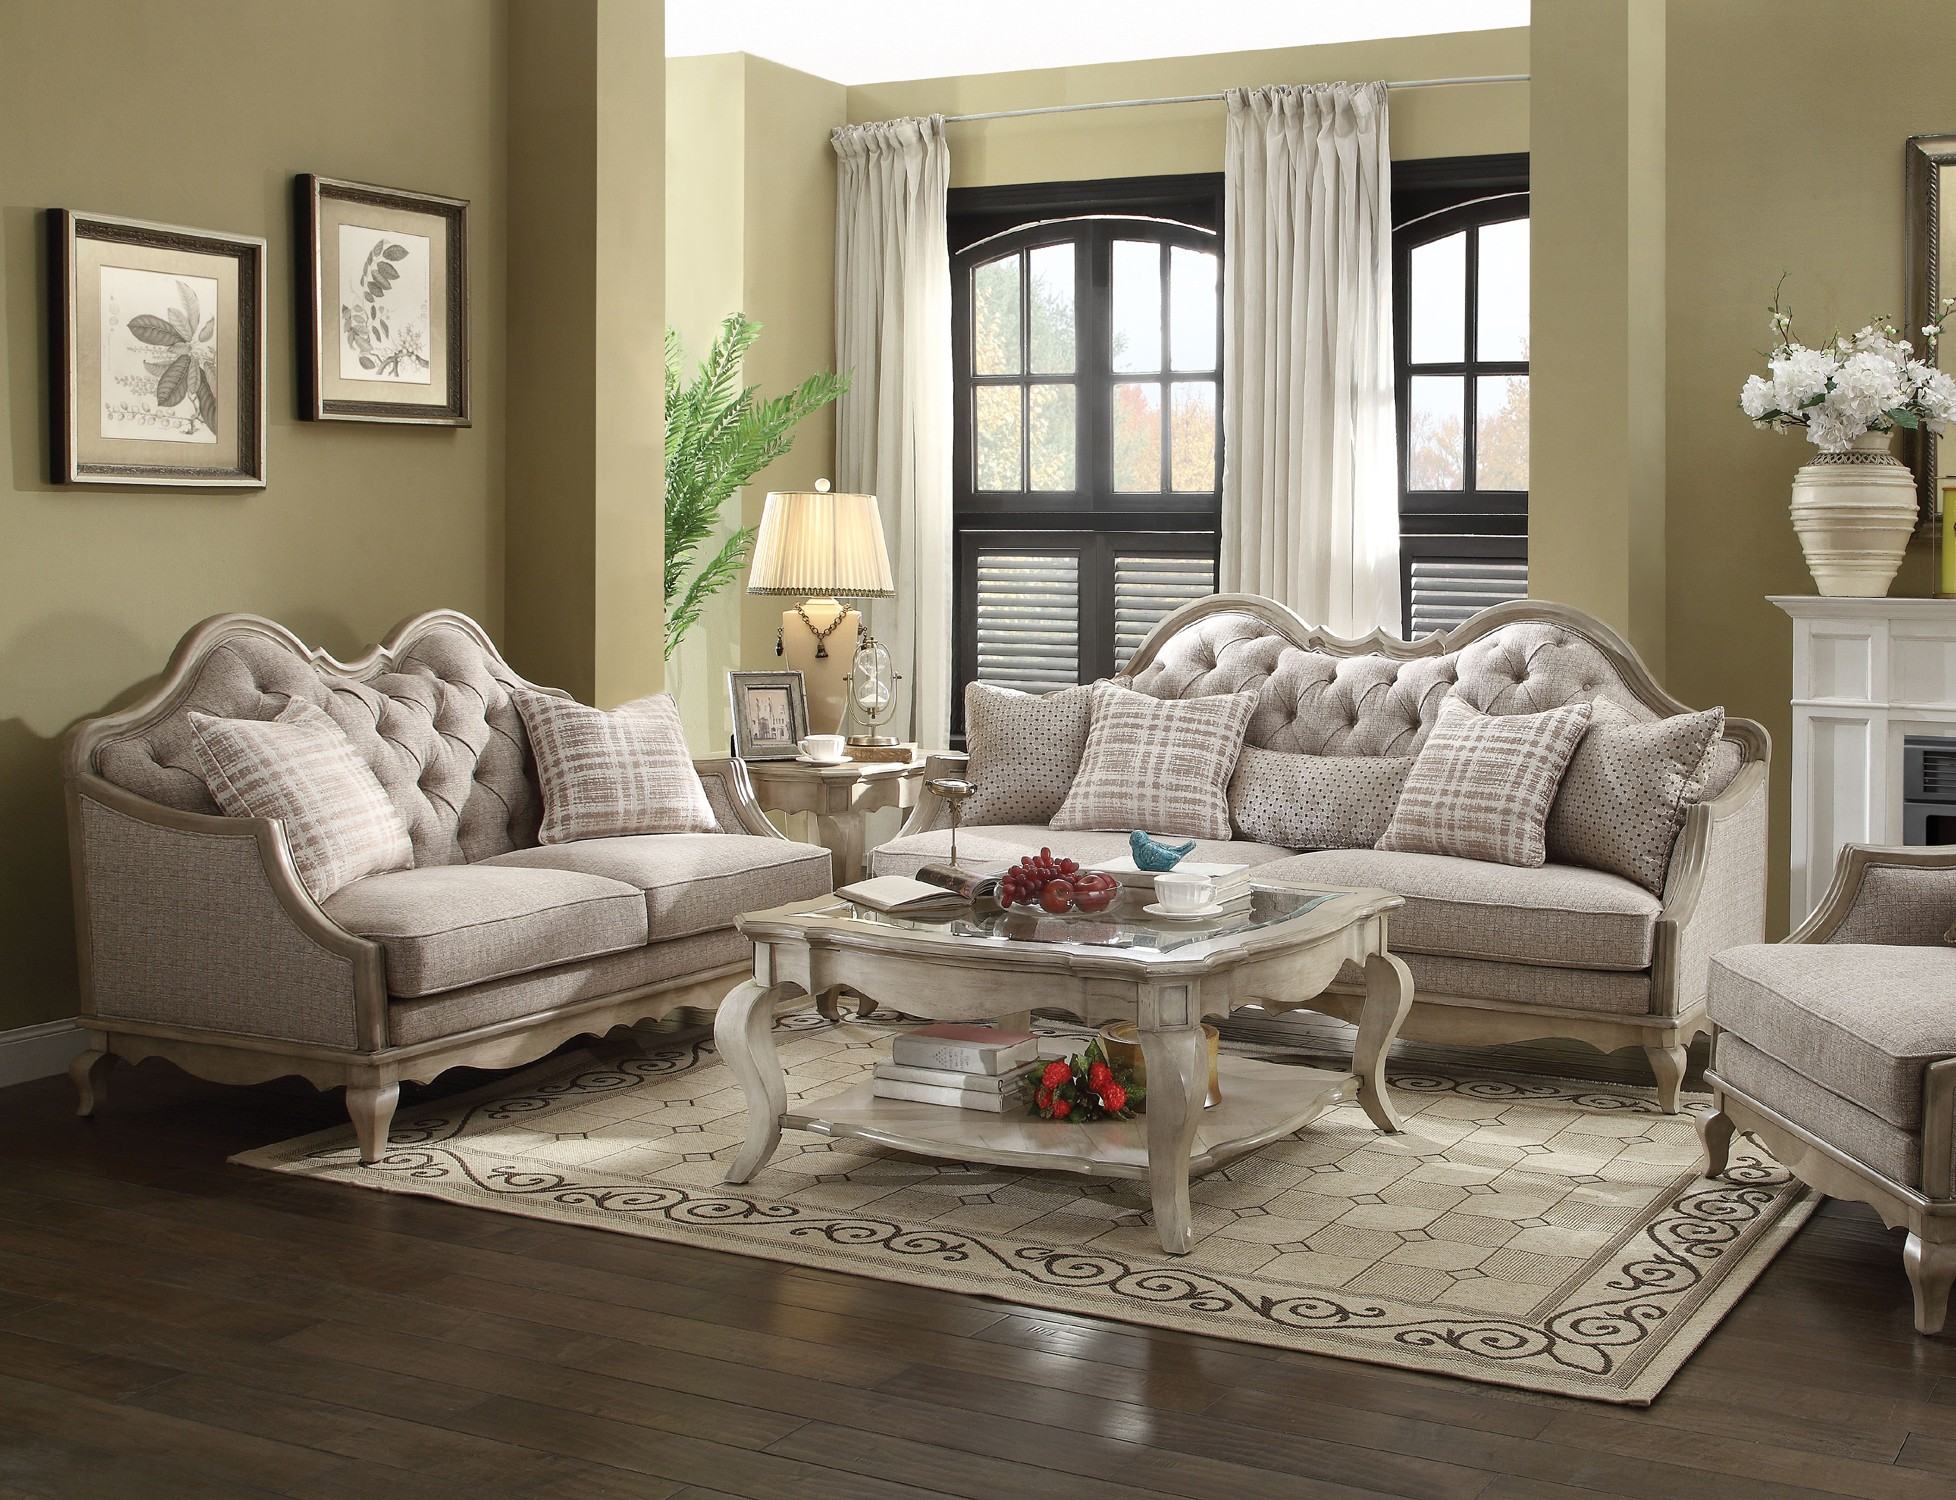 Acme chelmsford 2 piece fabric living room set in beigemedia image